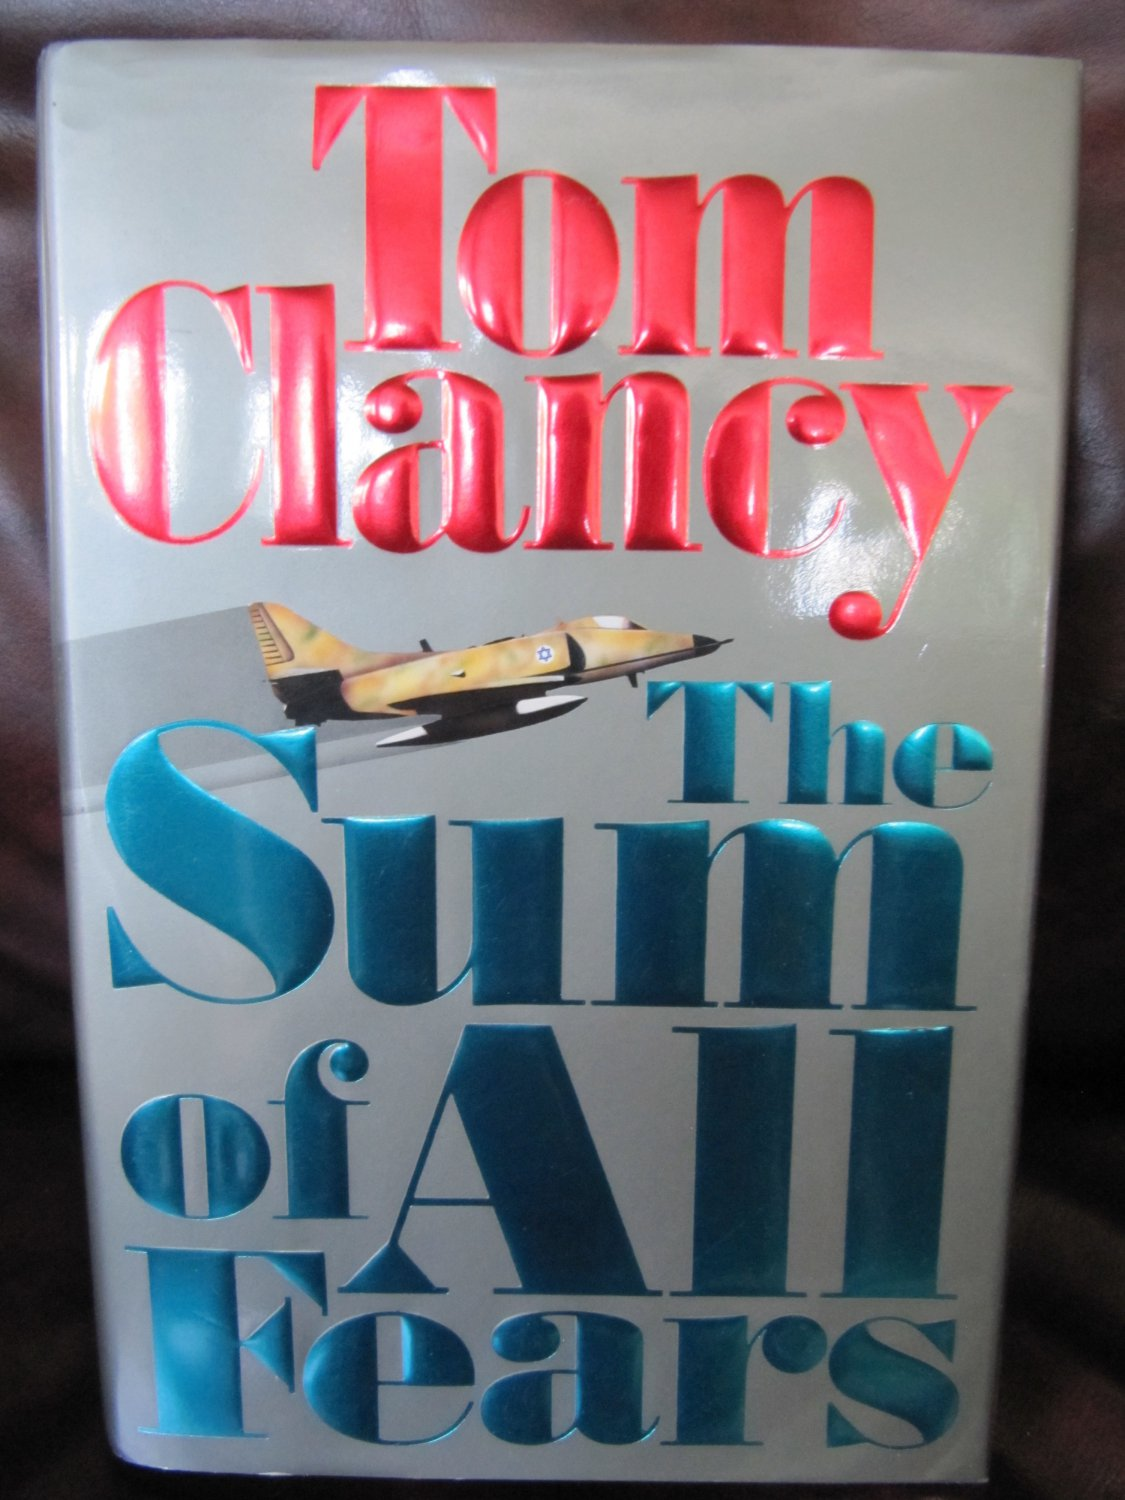 The Sum of All Fears by Tom Clancy Hardback Book 1st Ed w Jacket Embossed Signature on Cover